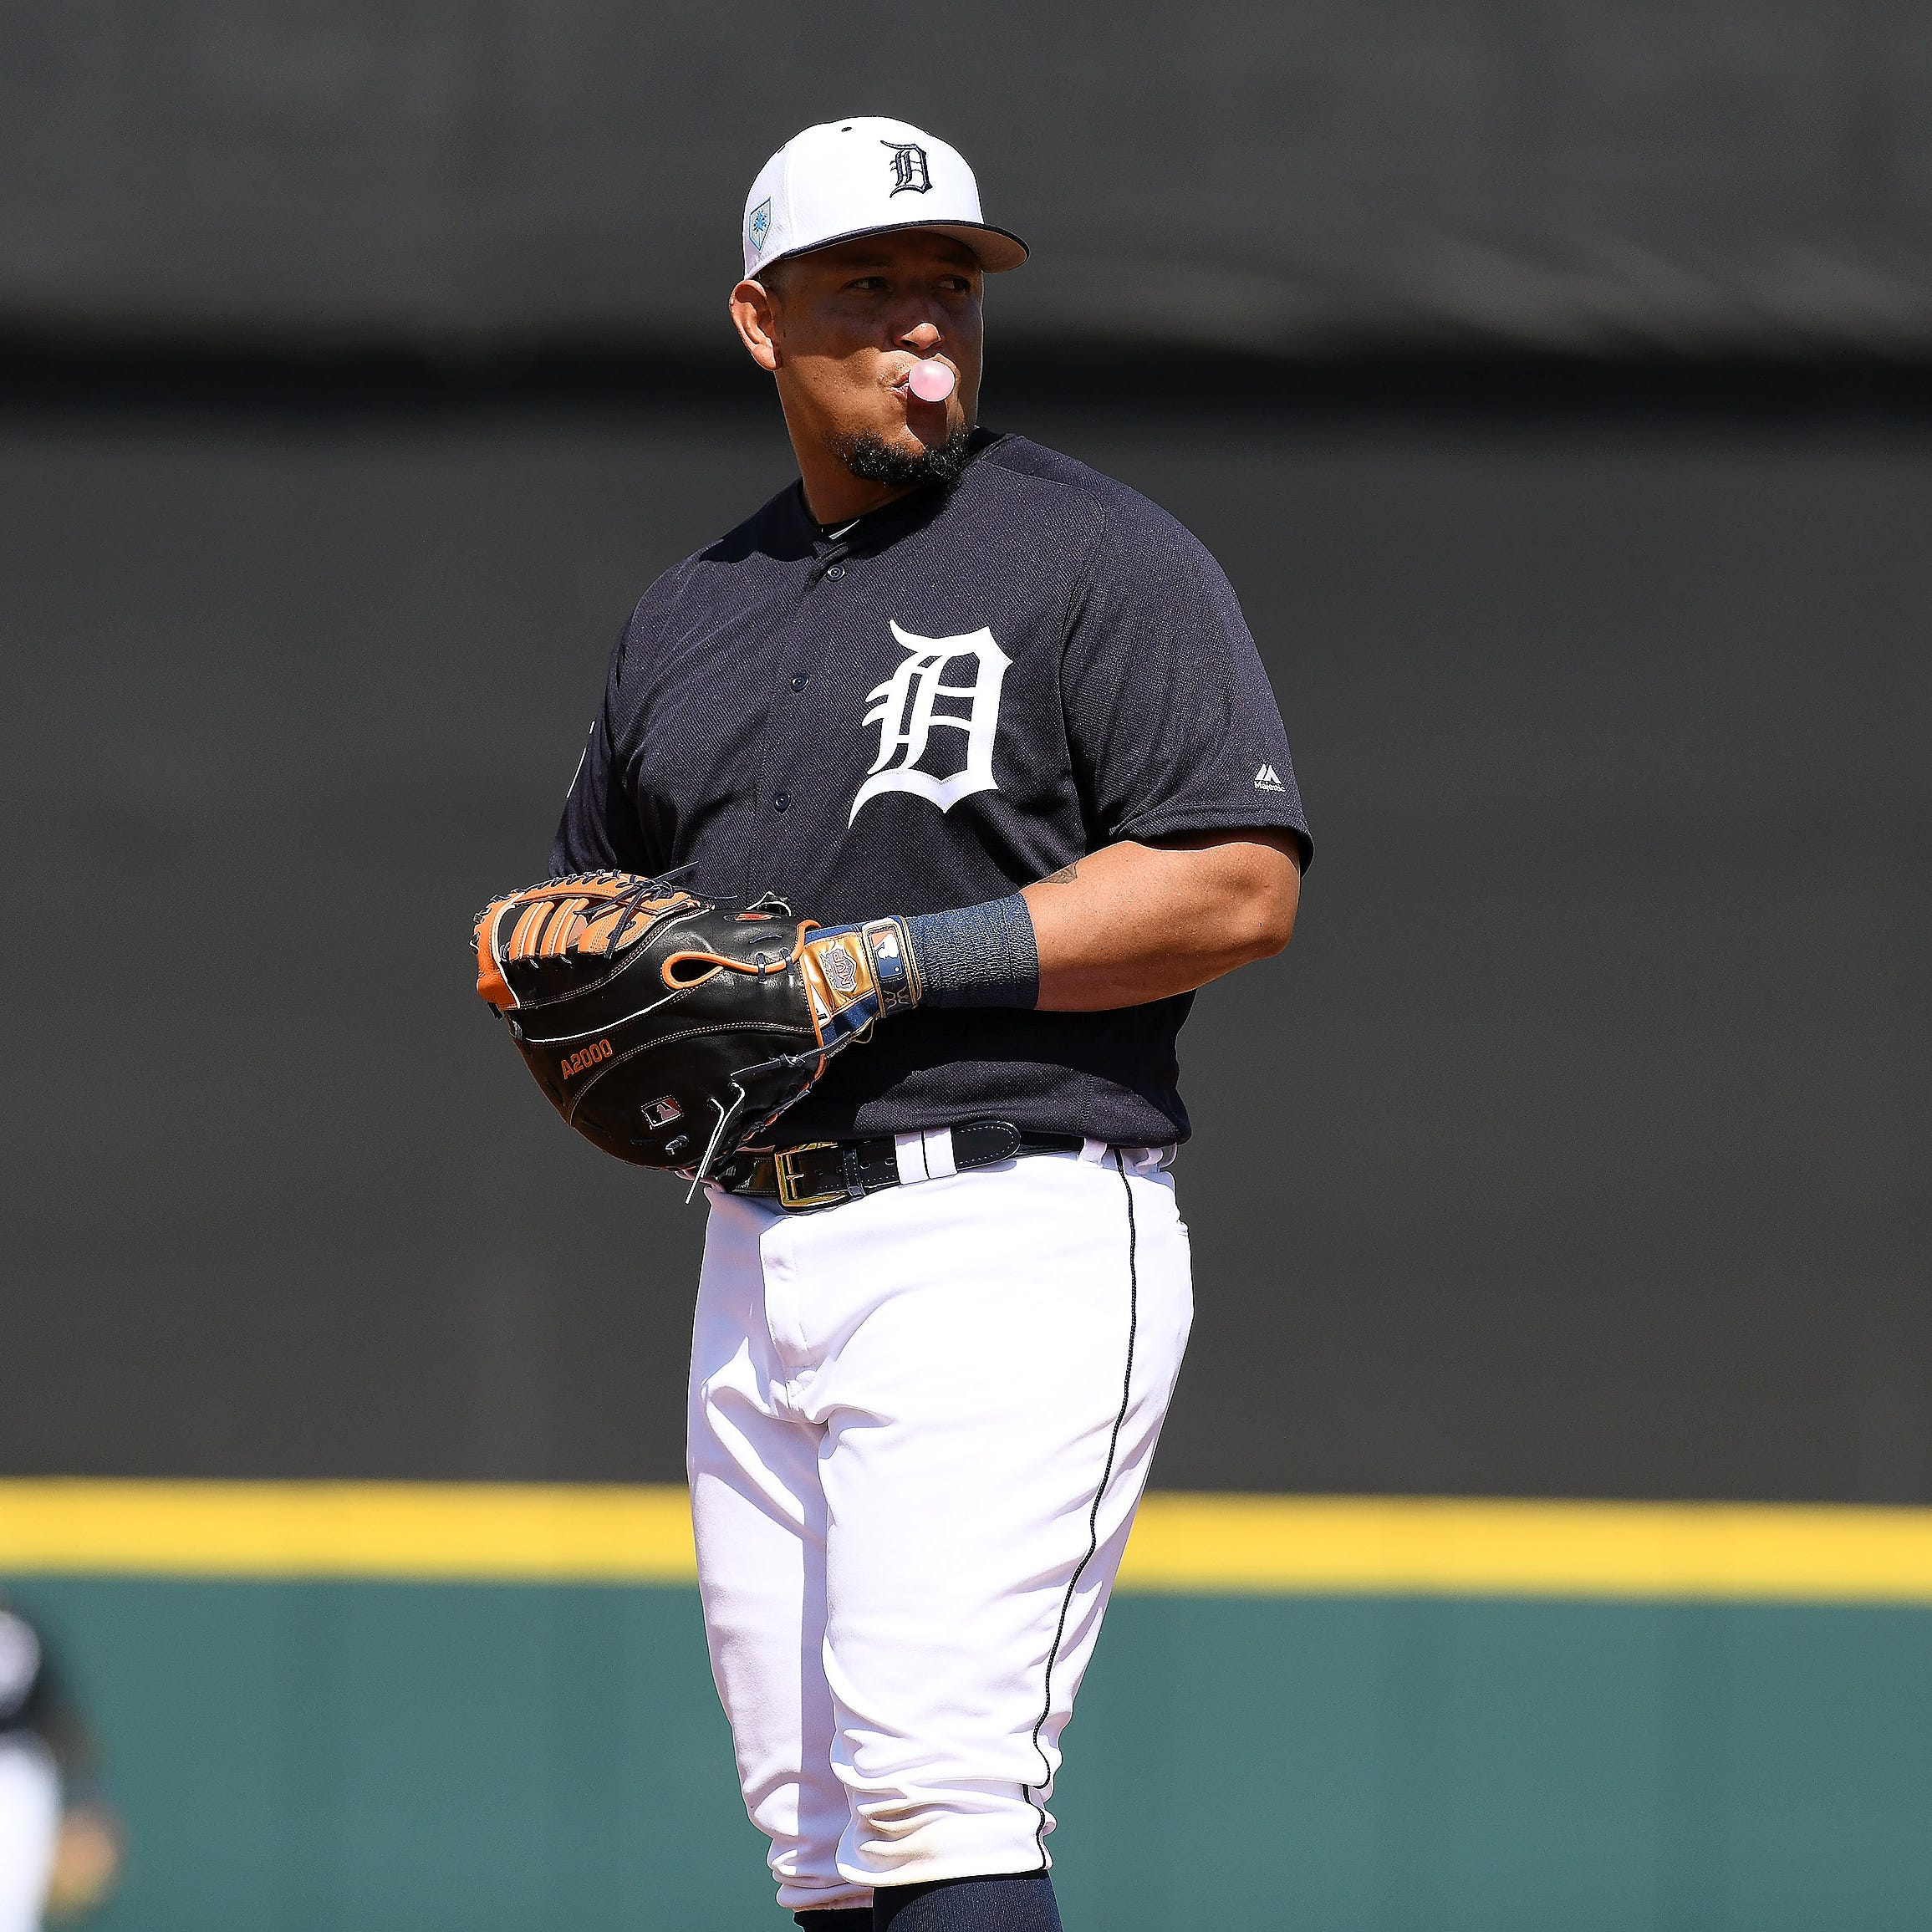 'I felt uncomfortable': Reacclimation process begins for Tigers' Miguel Cabrera